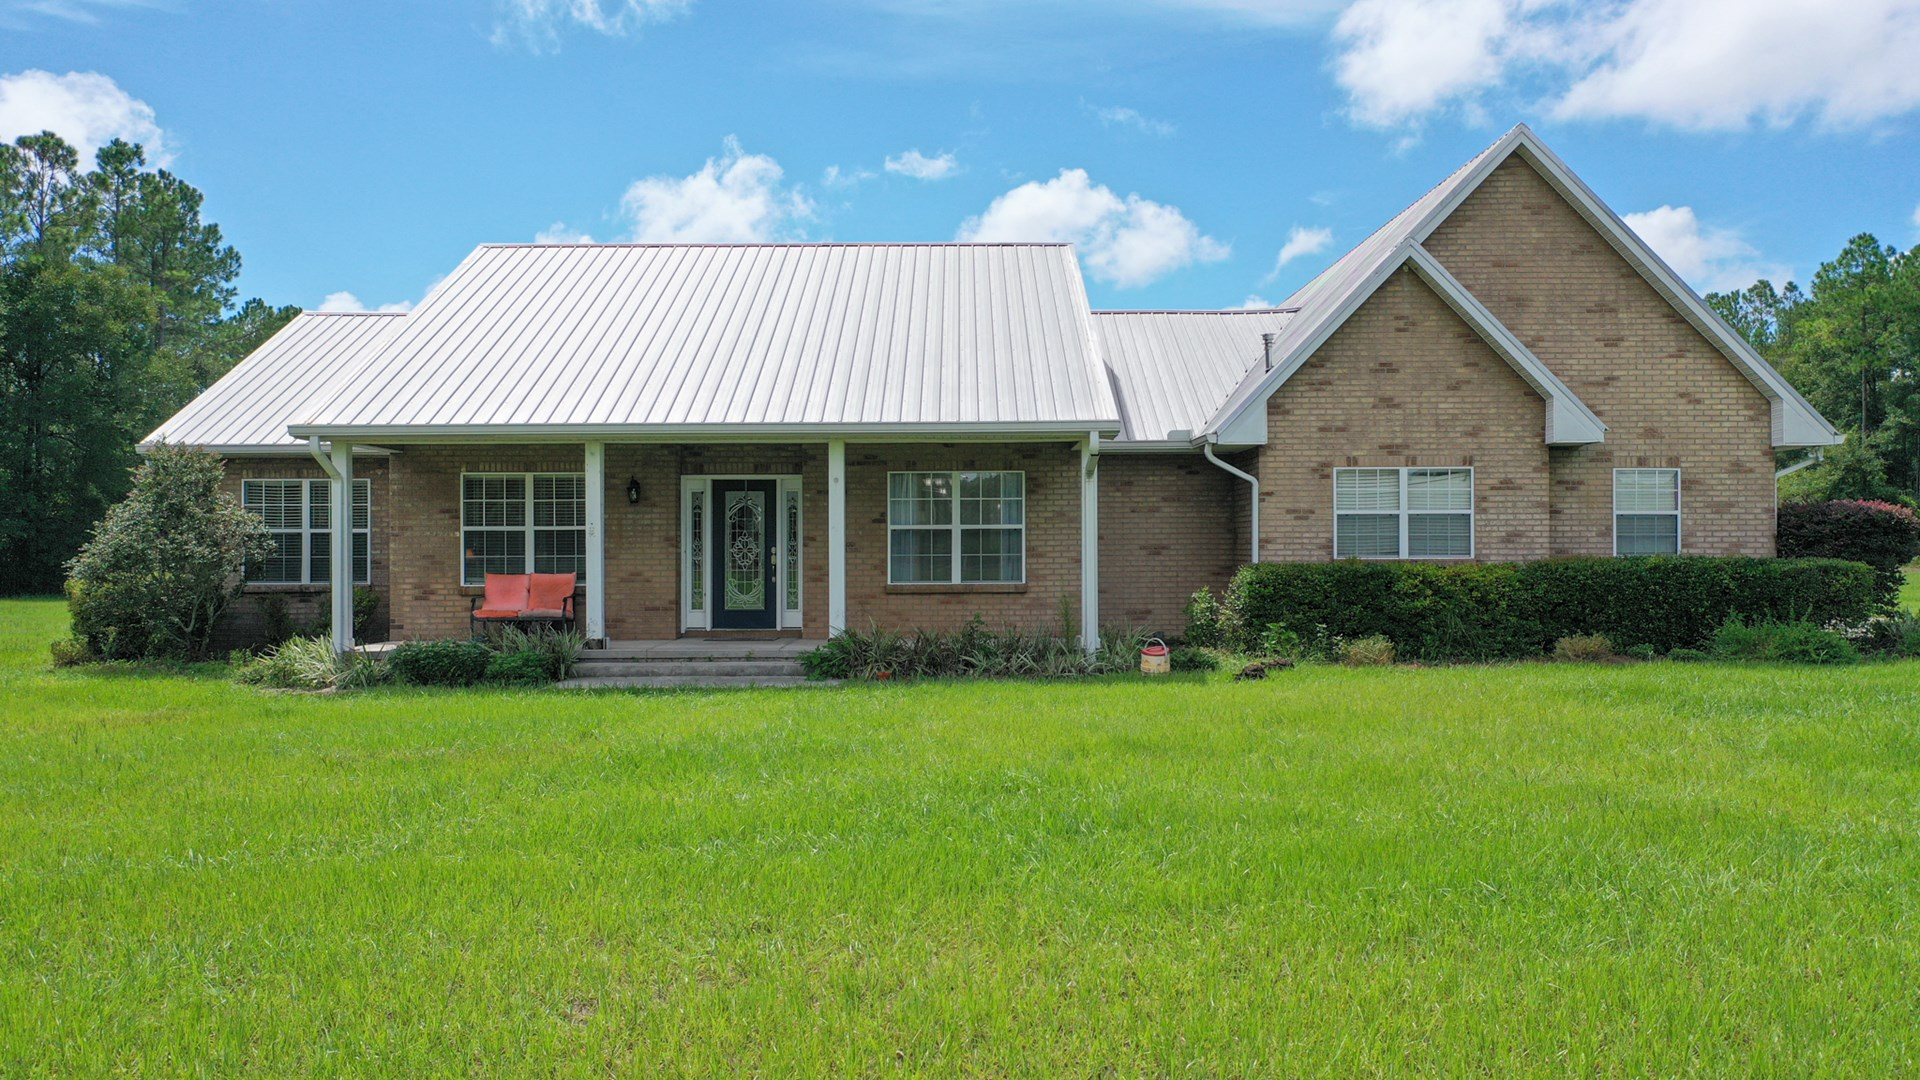 Come check out this beautiful 2200 square foot 3 bedroom!